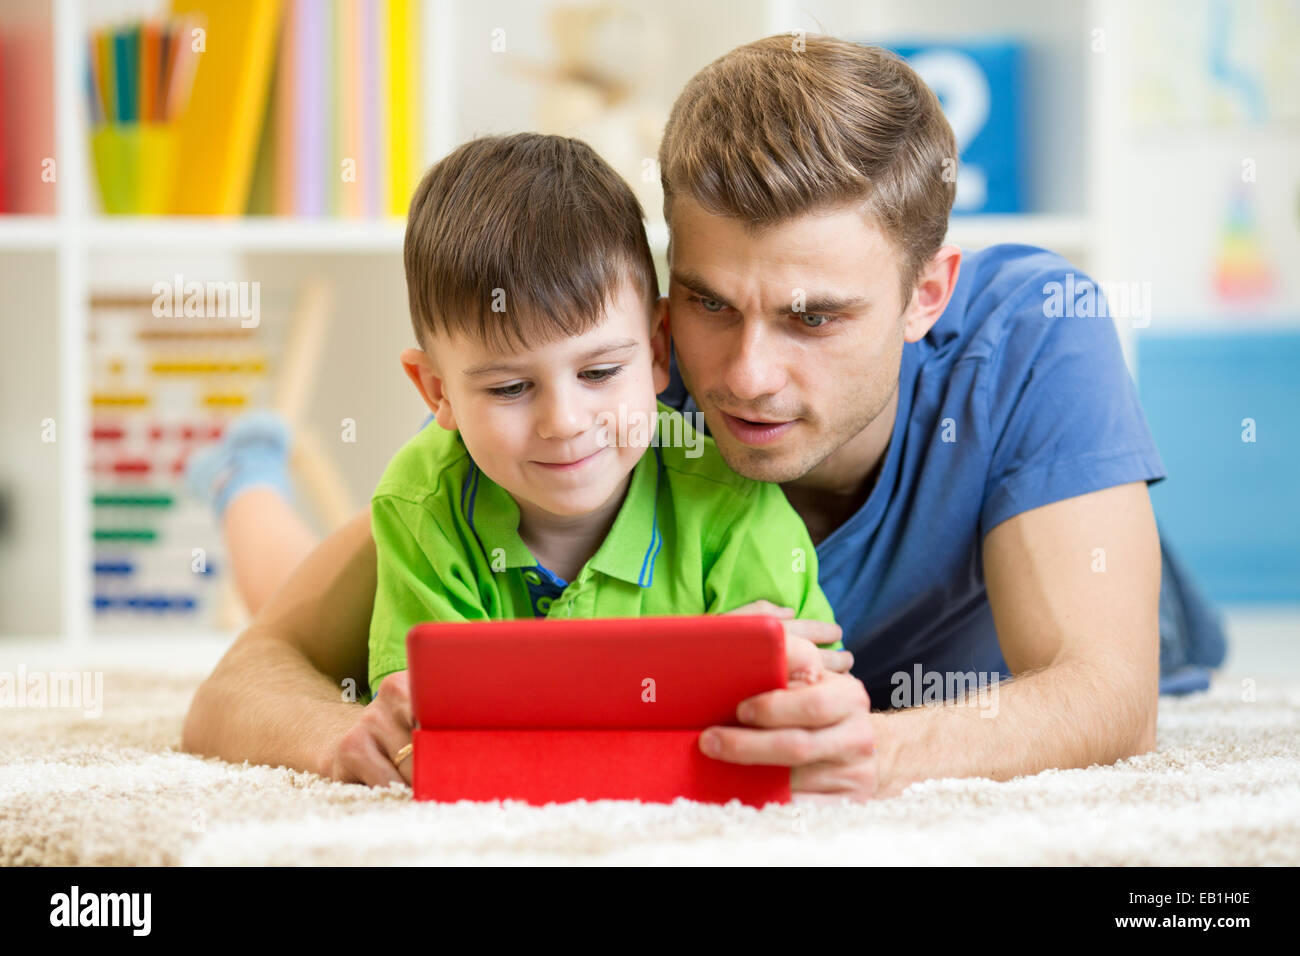 dad and son kid play with tablet computer indoors - Stock Image